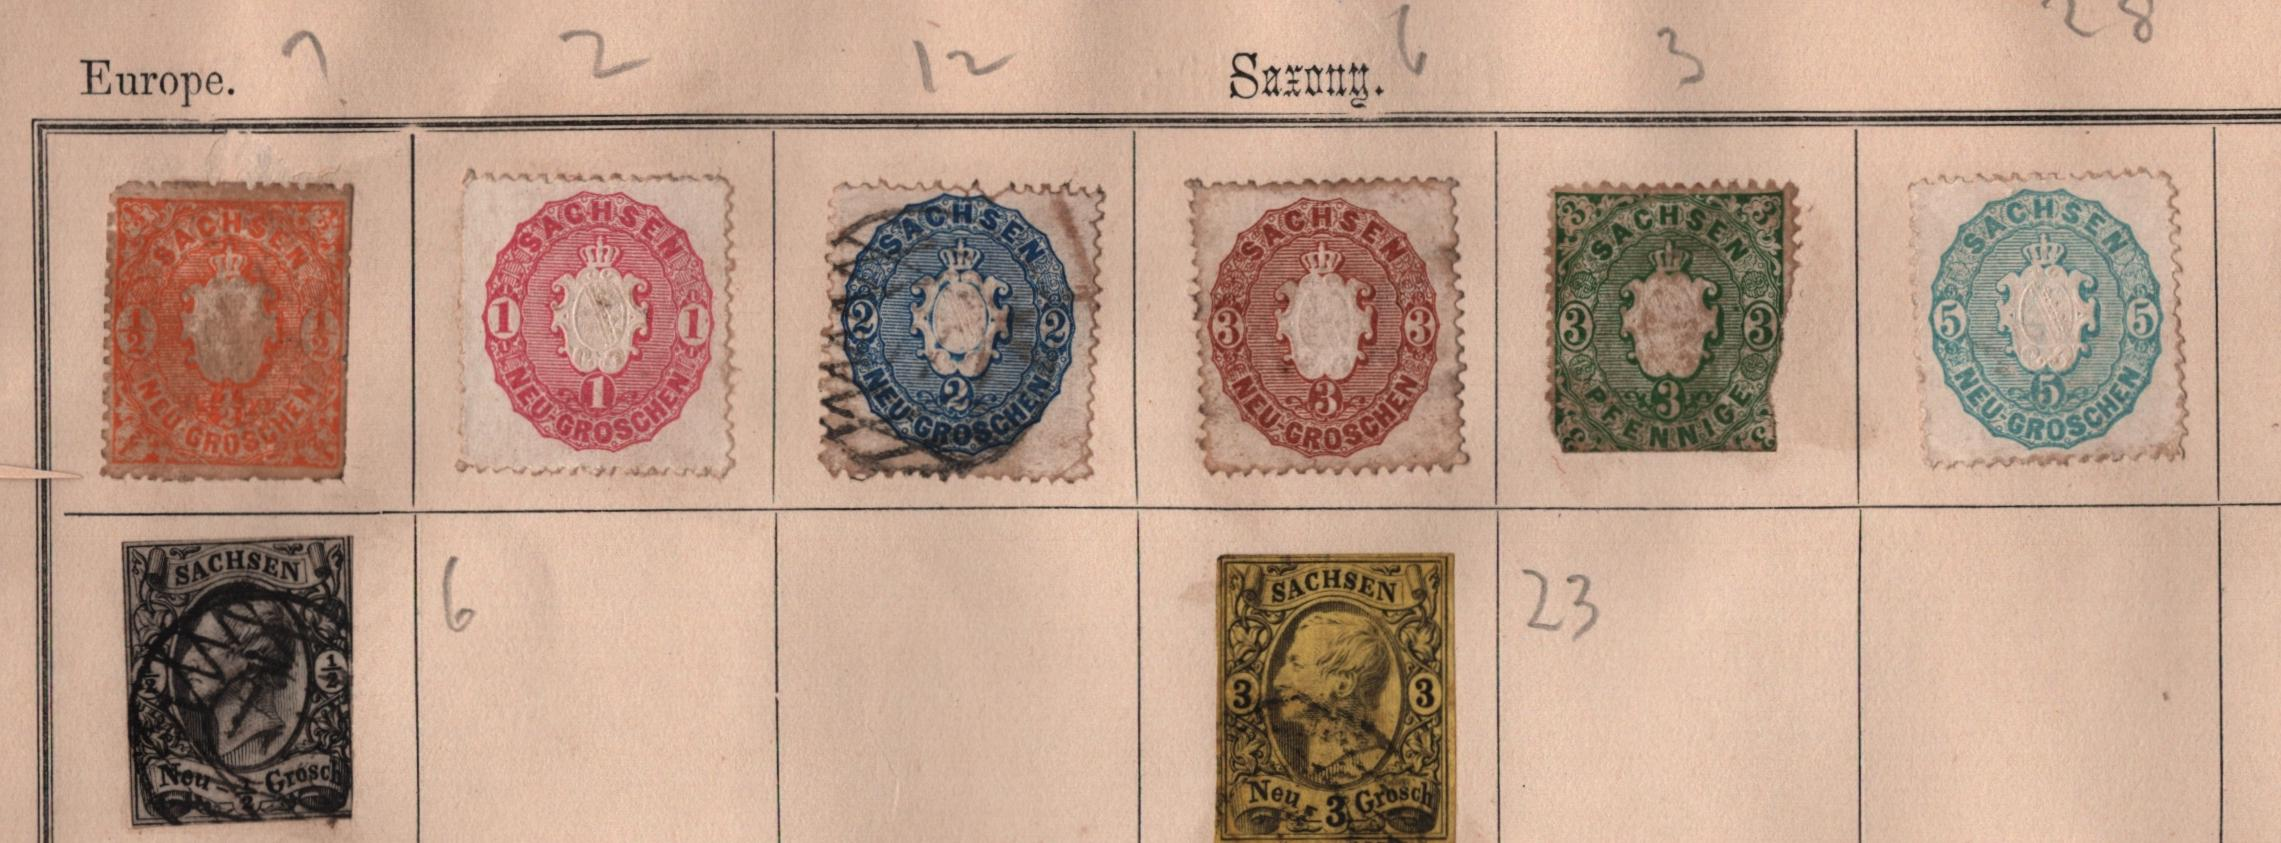 Saxony stamp collection on loose album page. 8 stamps. 1851/1863. Mint and used. Imp and perf. Cat